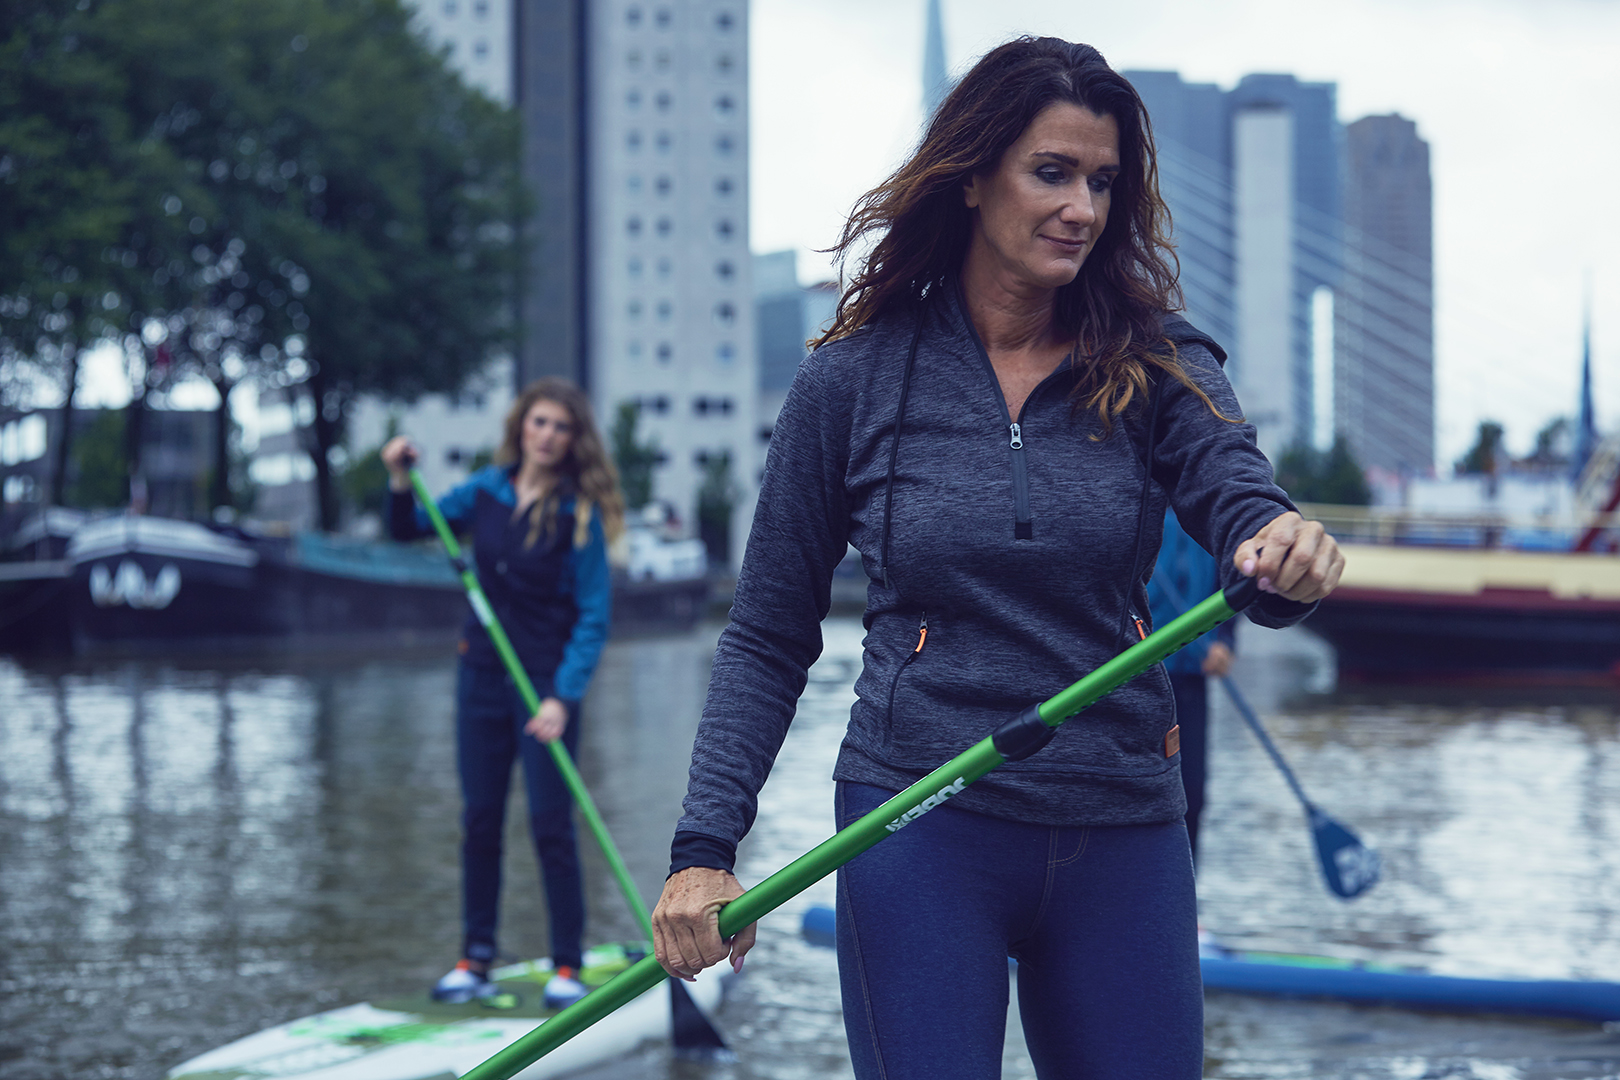 SUP-talk: Master your paddle stroke like a pro